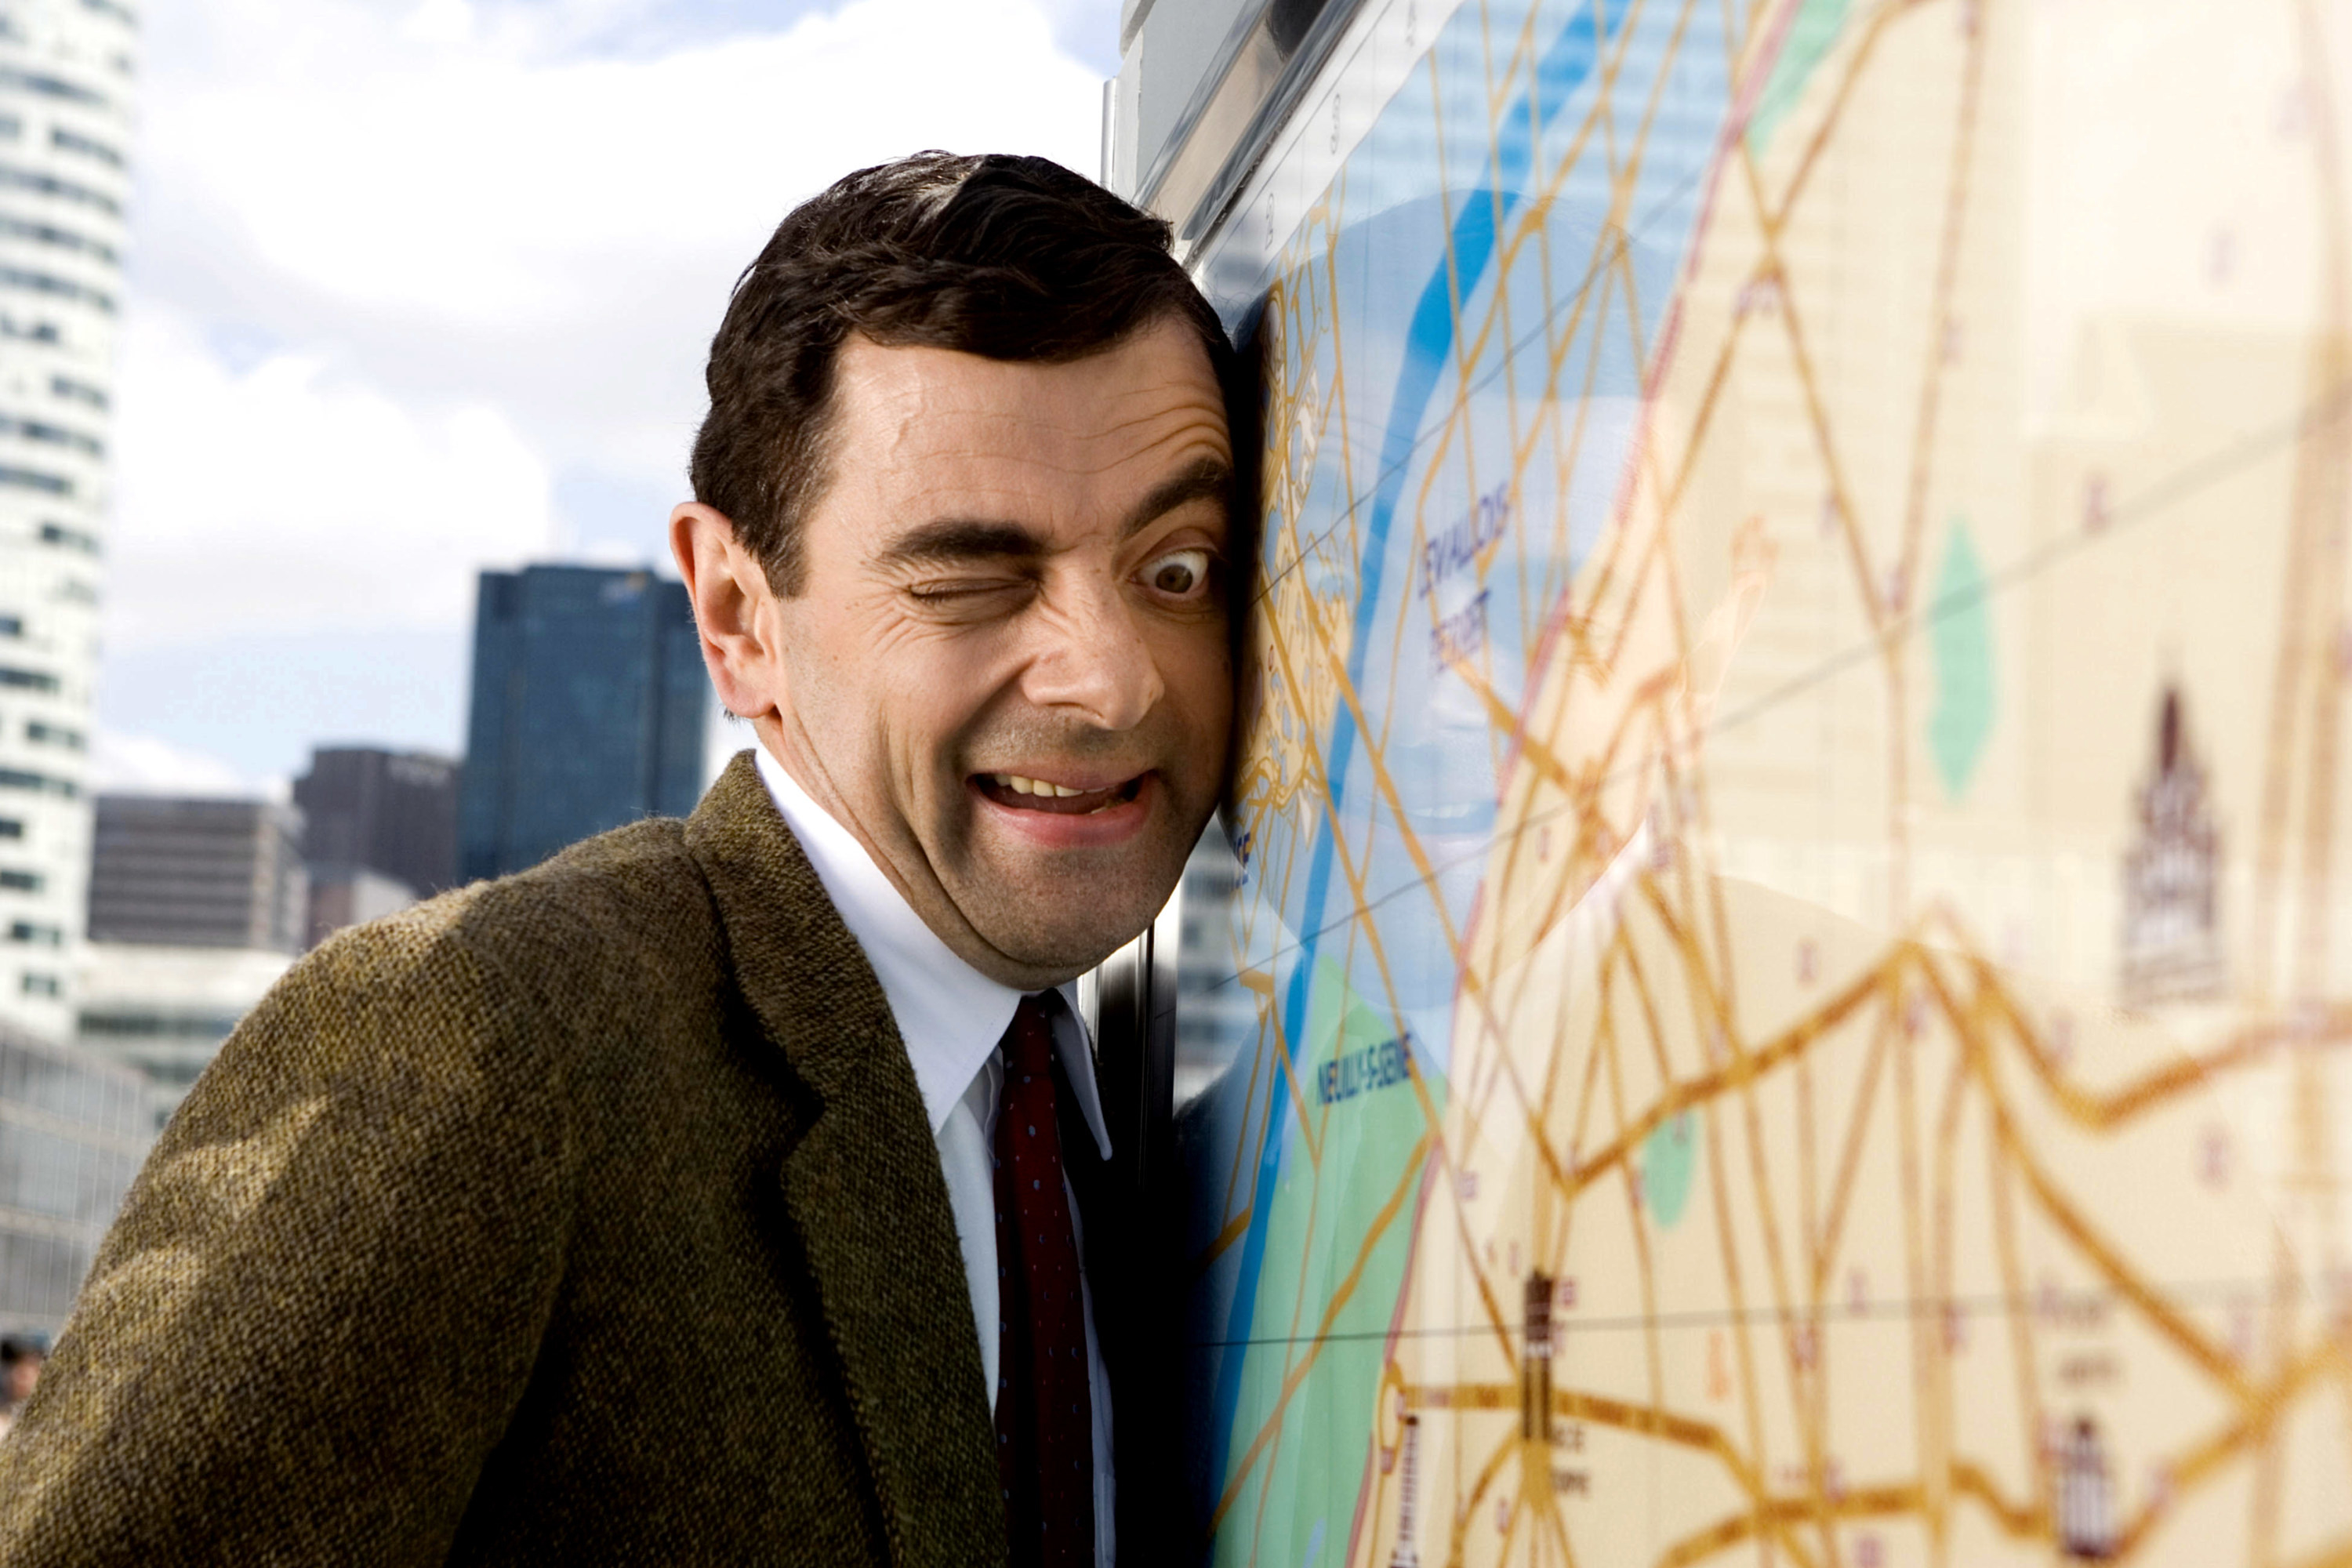 Mr. Bean with his face smushed against a map